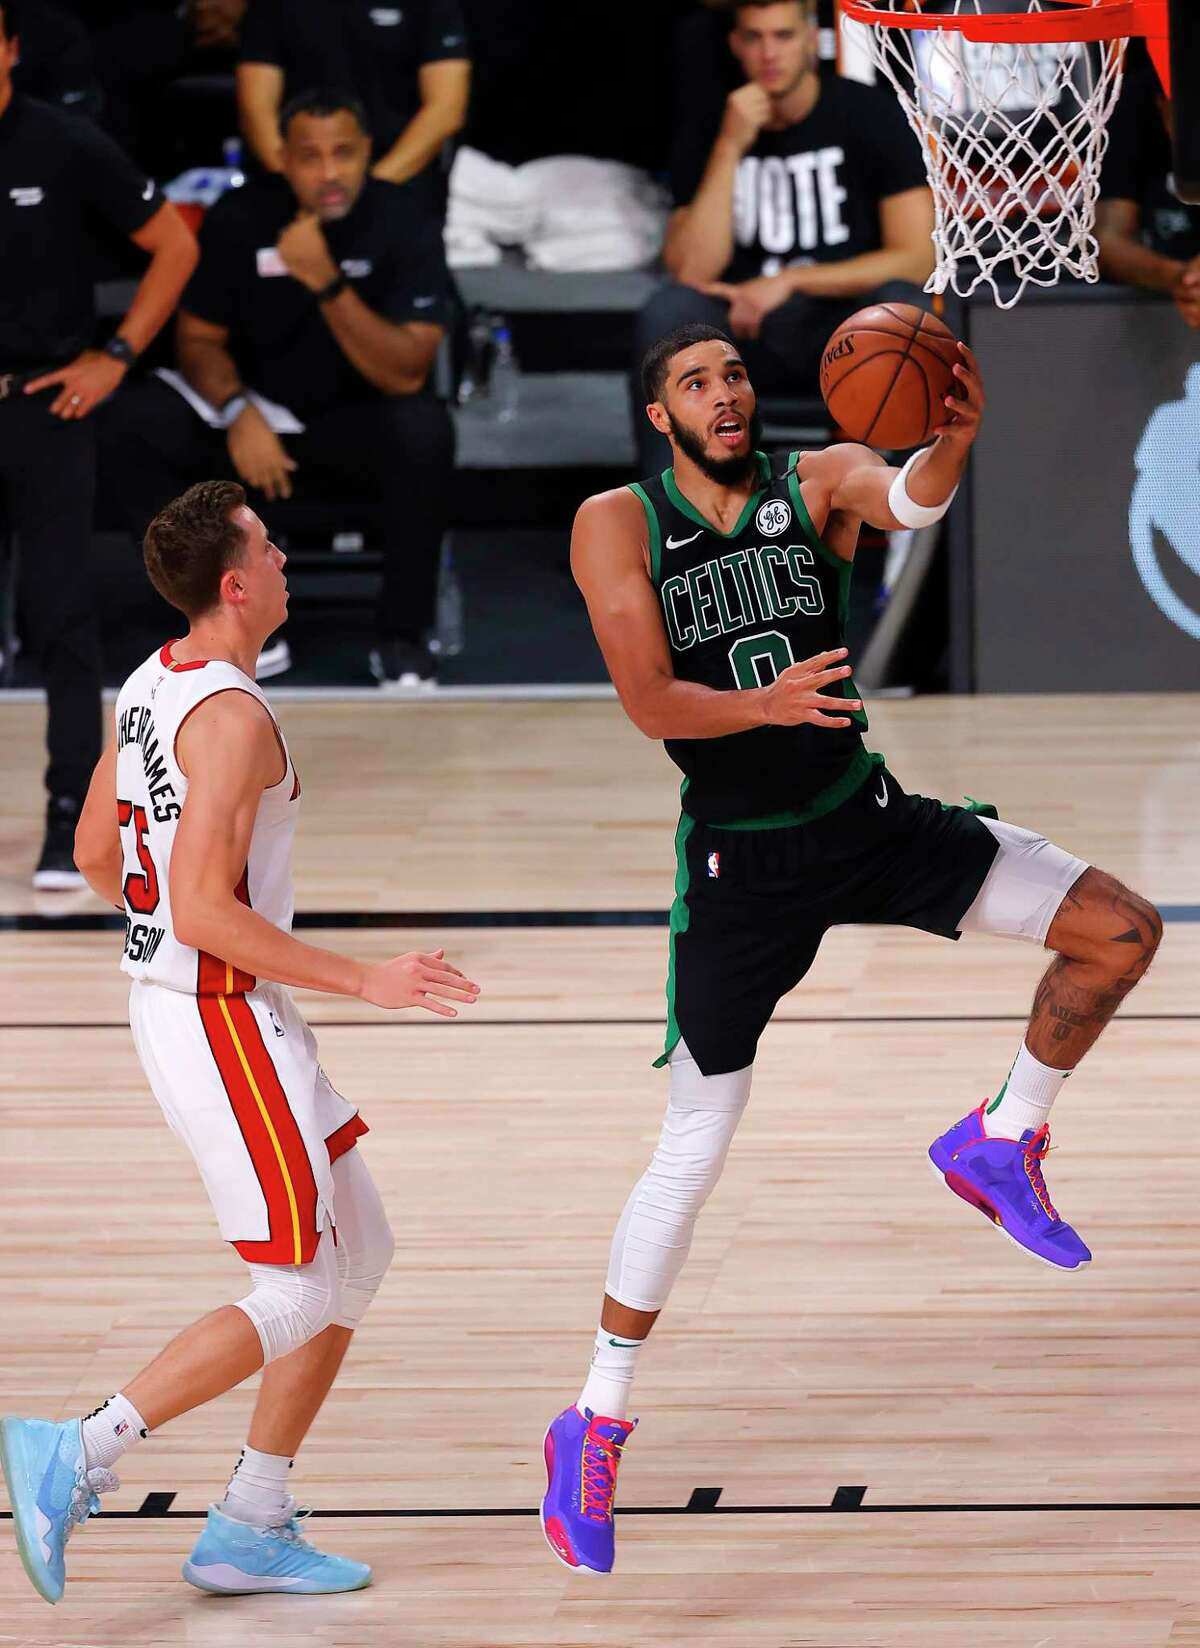 LAKE BUENA VISTA, FLORIDA - SEPTEMBER 25: Jayson Tatum #0 of the Boston Celtics goes for a lay-up against Duncan Robinson #55 of the Miami Heat during the fourth quarter in Game Five of the Eastern Conference Finals during the 2020 NBA Playoffs at AdventHealth Arena at the ESPN Wide World Of Sports Complex on September 25, 2020 in Lake Buena Vista, Florida. NOTE TO USER: User expressly acknowledges and agrees that, by downloading and or using this photograph, User is consenting to the terms and conditions of the Getty Images License Agreement. (Photo by Mike Ehrmann/Getty Images)